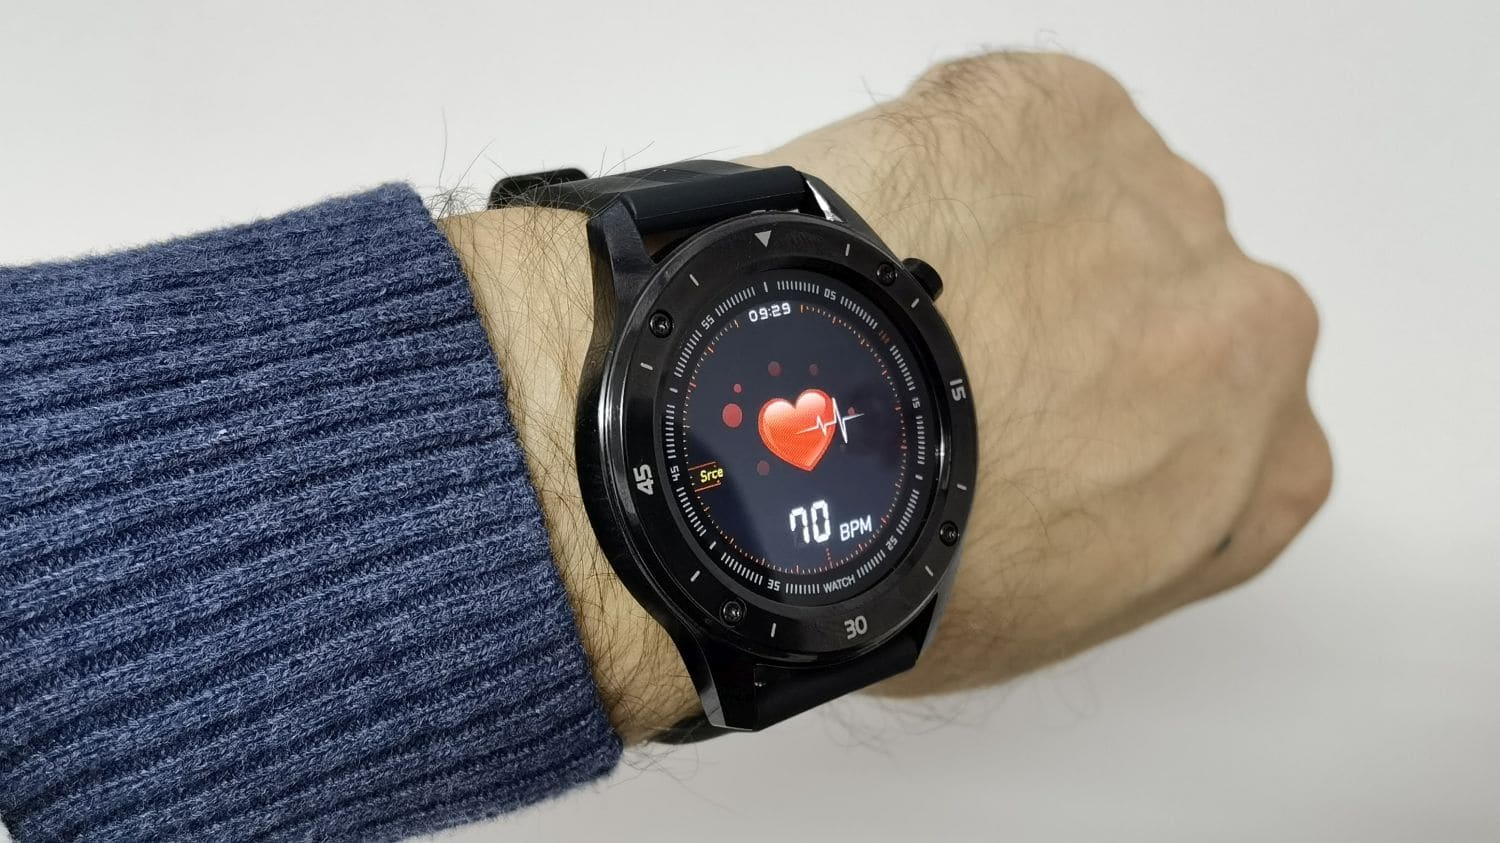 meanIT Smartwatch M9 Light 24